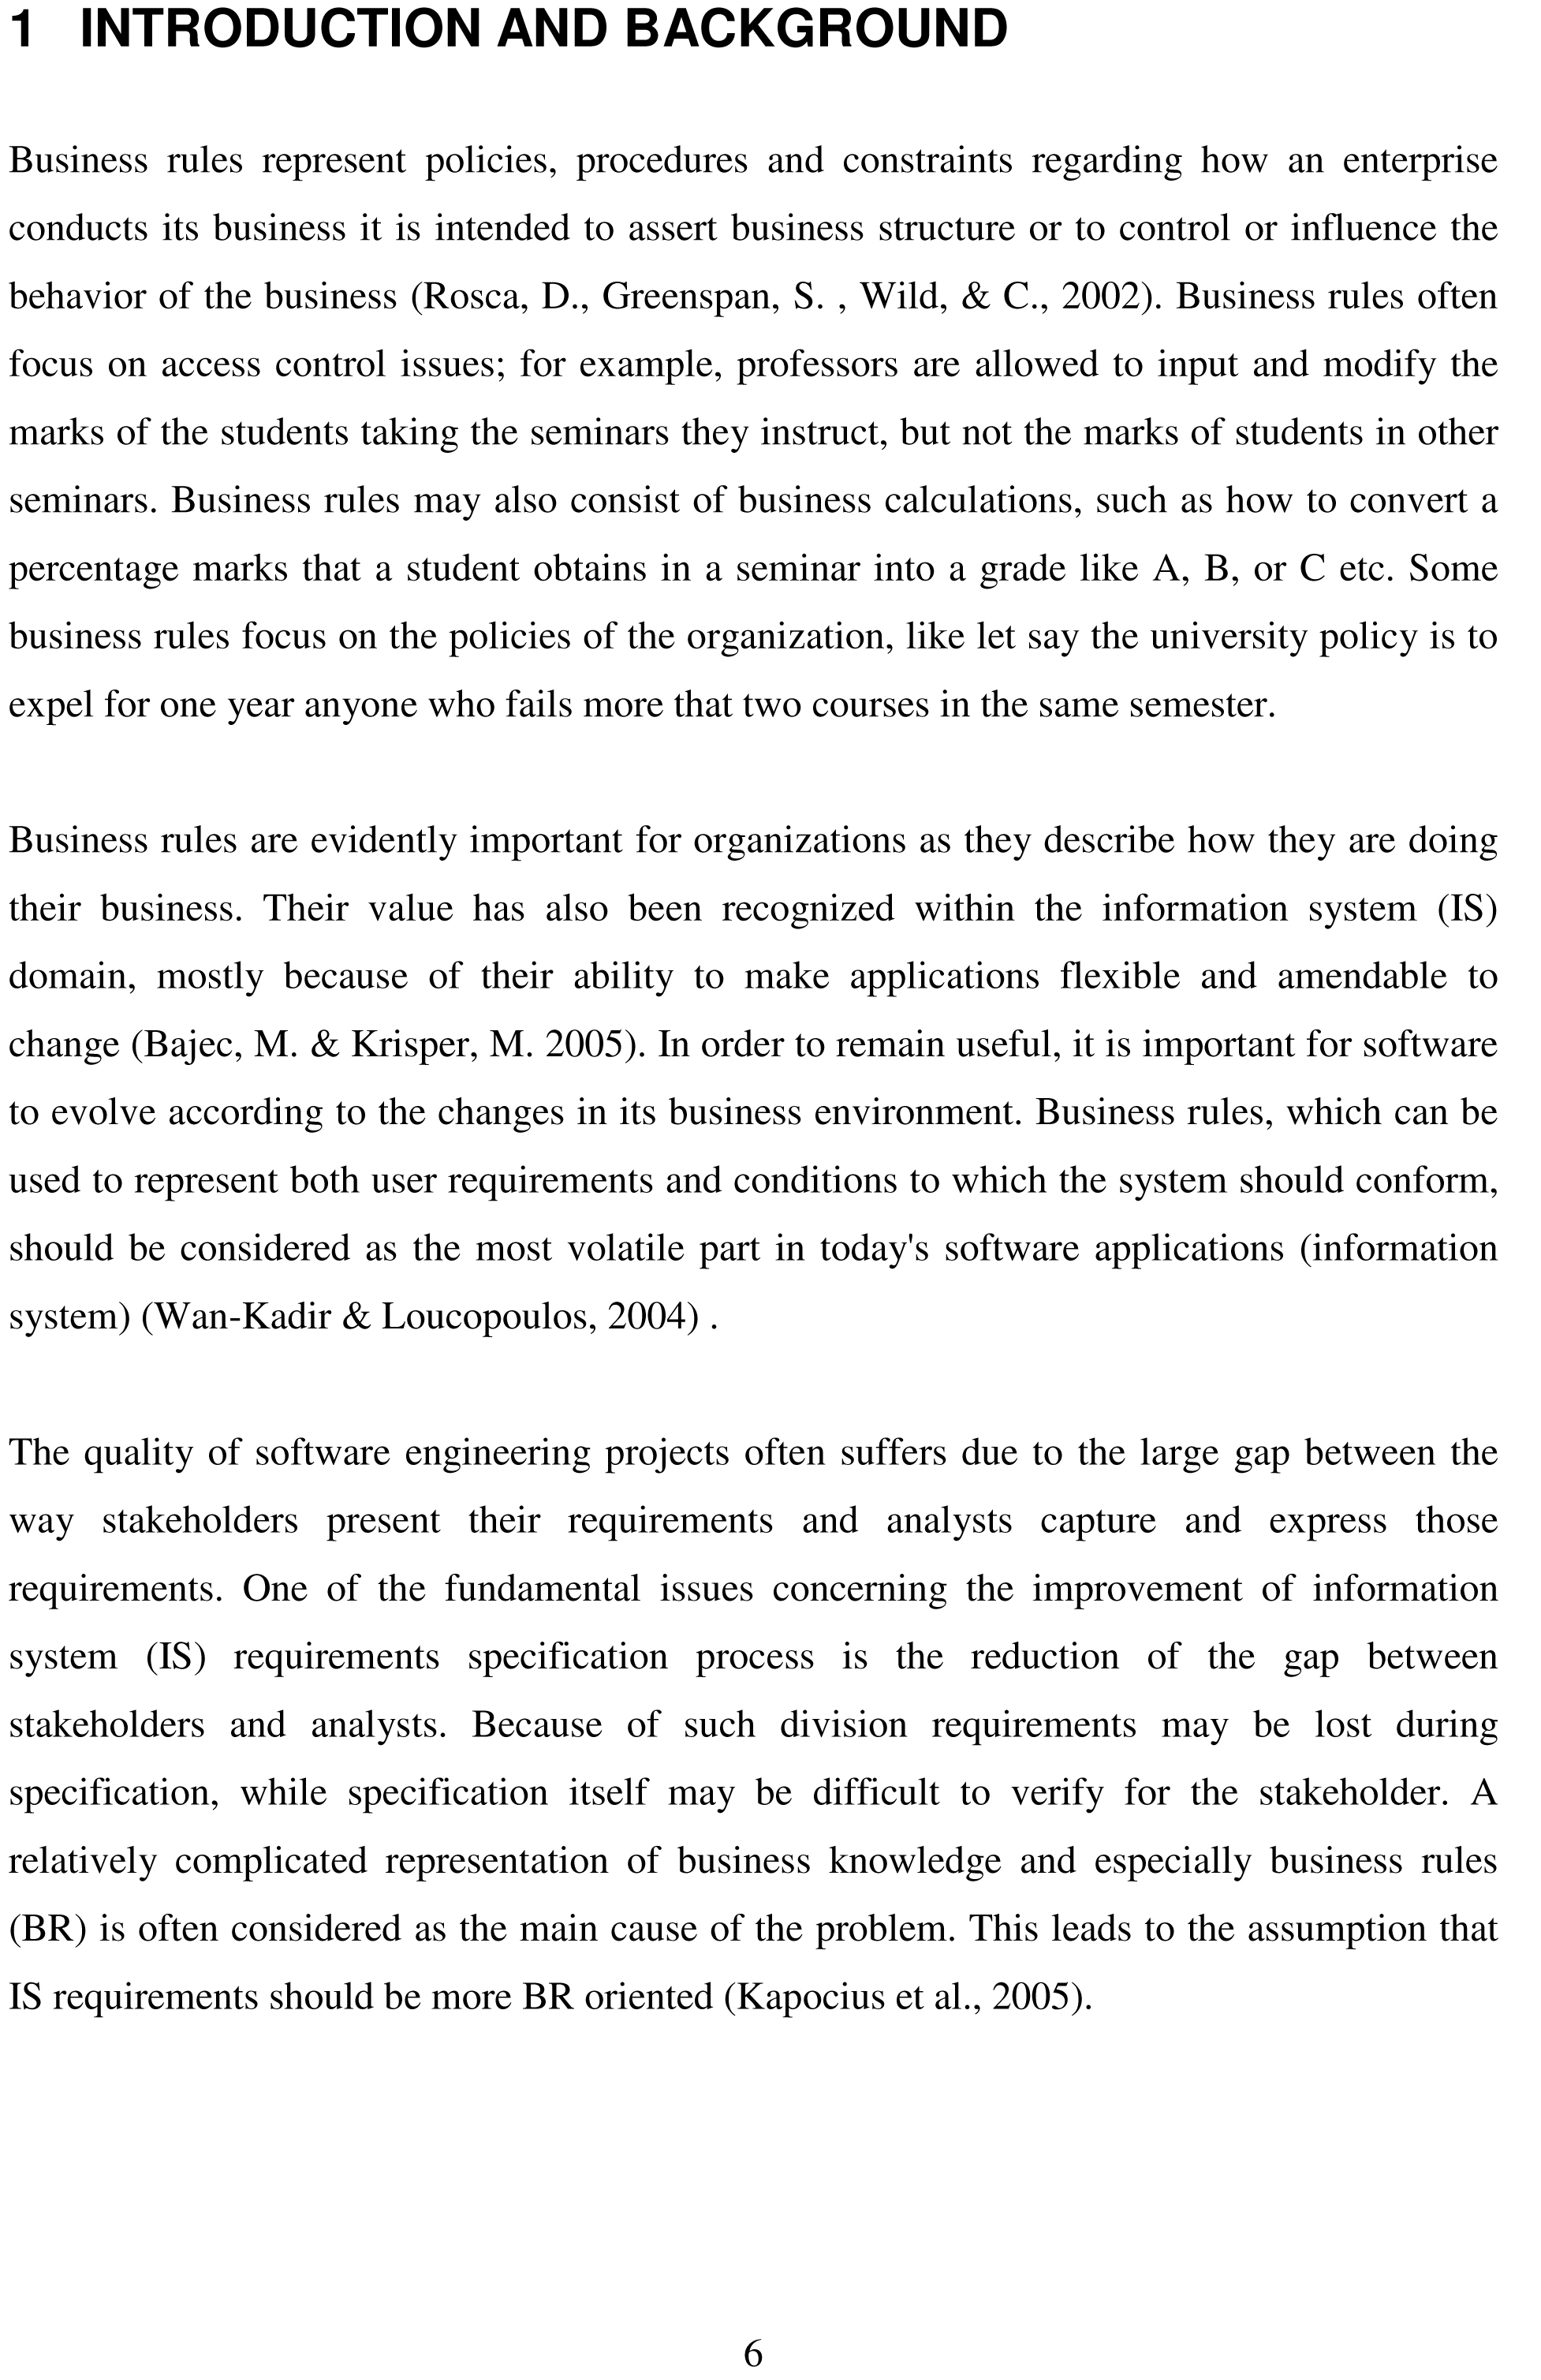 017 Thesis Free Sample1 Write My Essay For Shocking App Argumentative Online Full